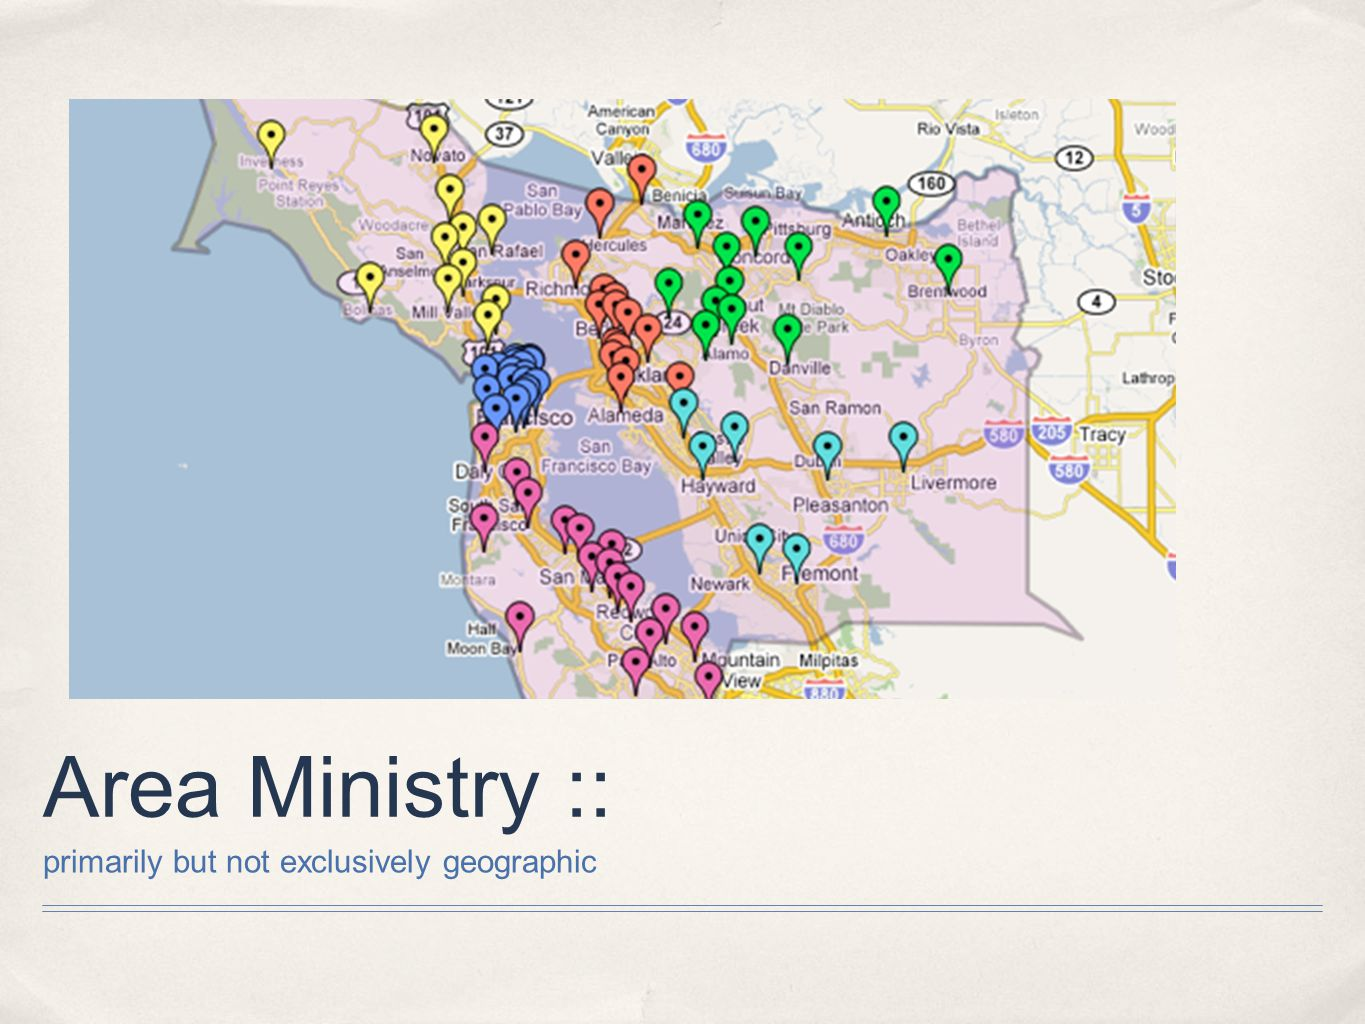 Area Ministry :: primarily but not exclusively geographic